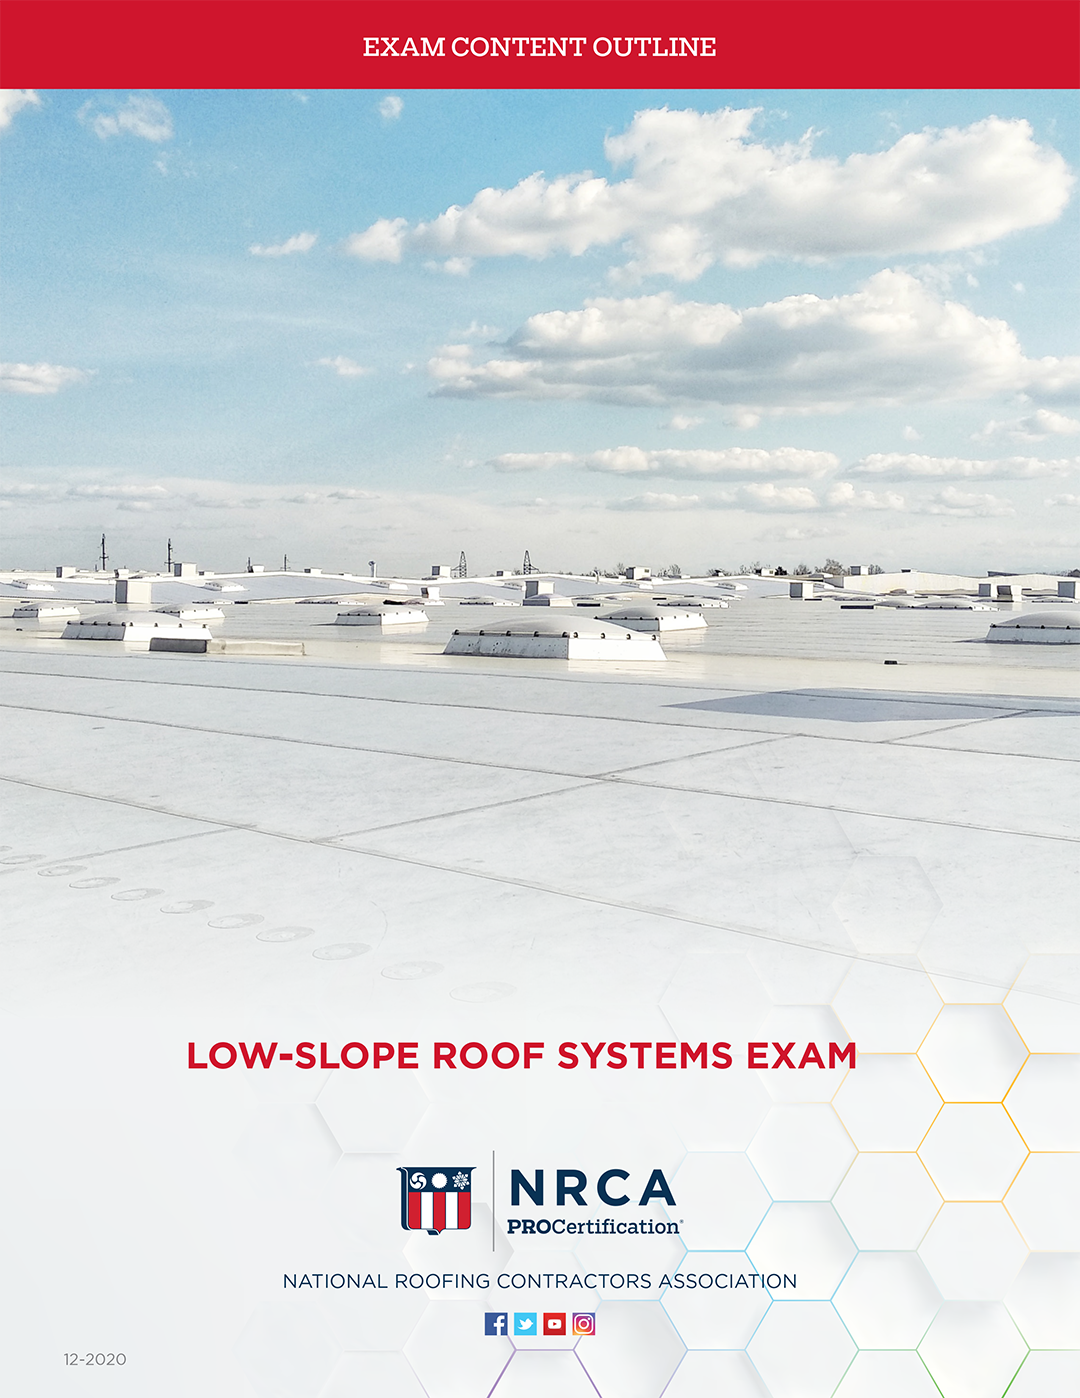 Low-slope Roof Systems Exam Content Outline